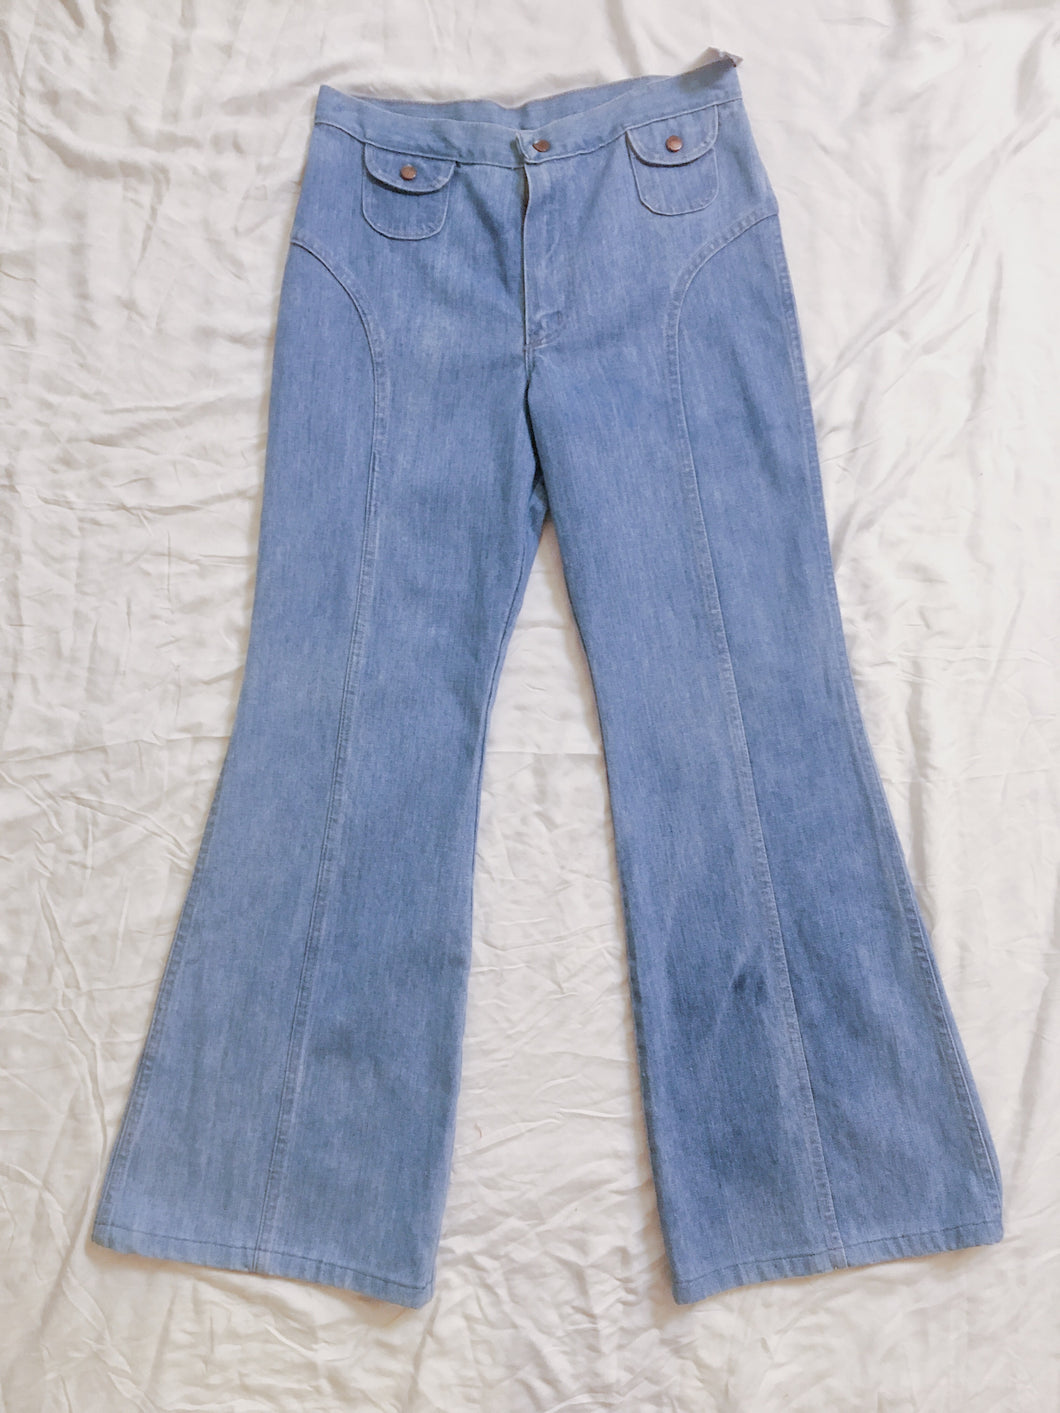 Wrangler Denim Bellbottoms Jean